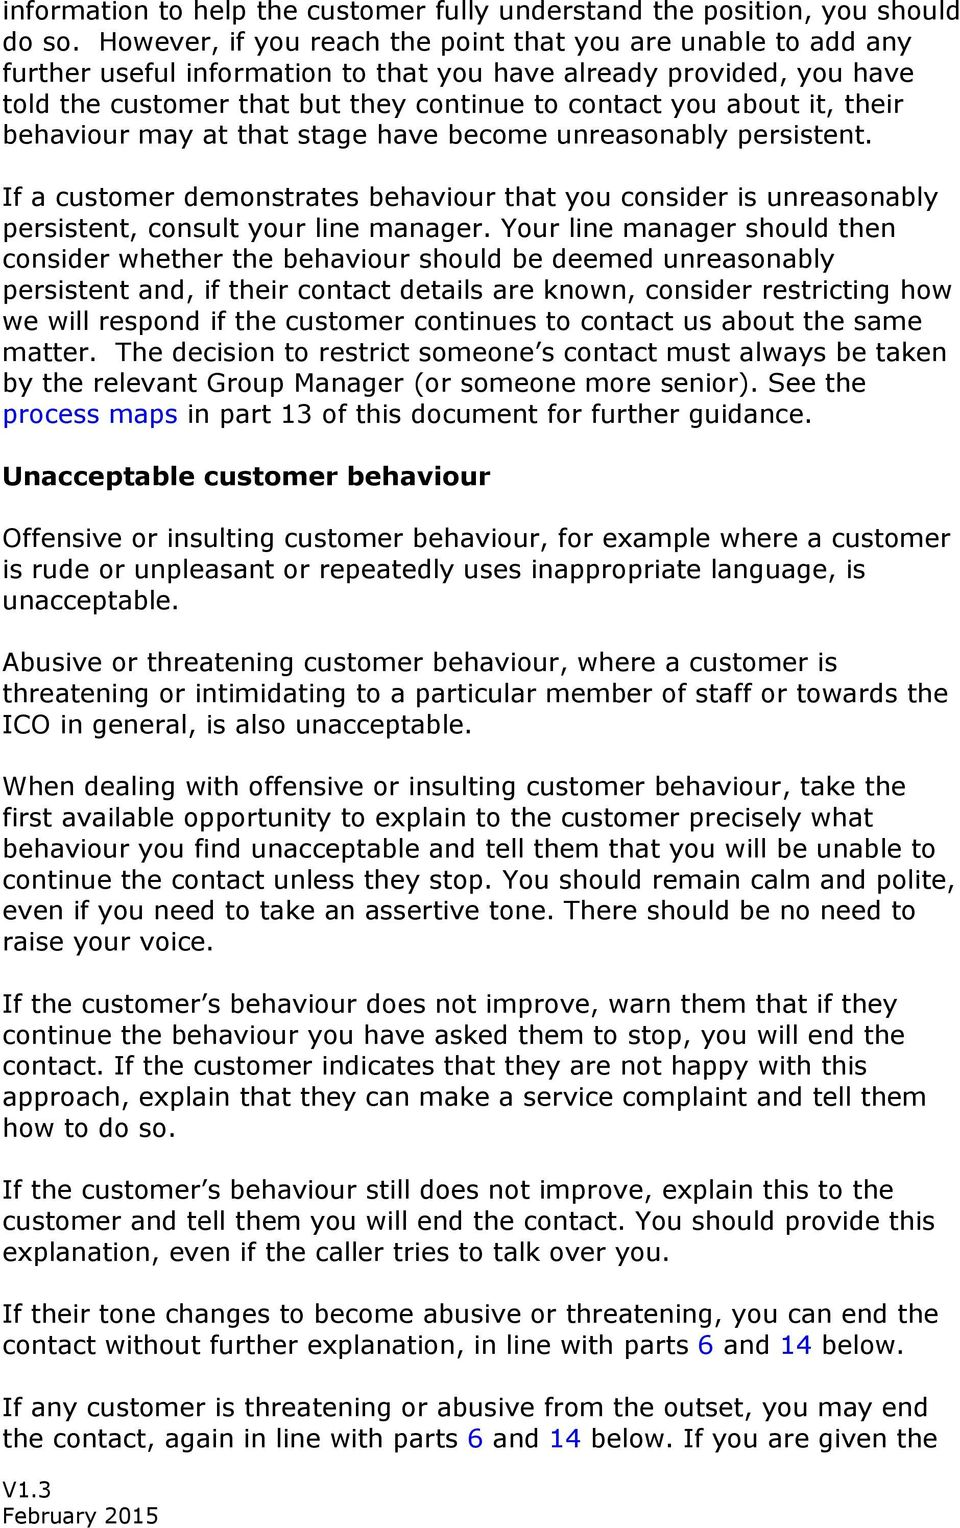 their behaviour may at that stage have become unreasonably persistent. If a customer demonstrates behaviour that you consider is unreasonably persistent, consult your line manager.